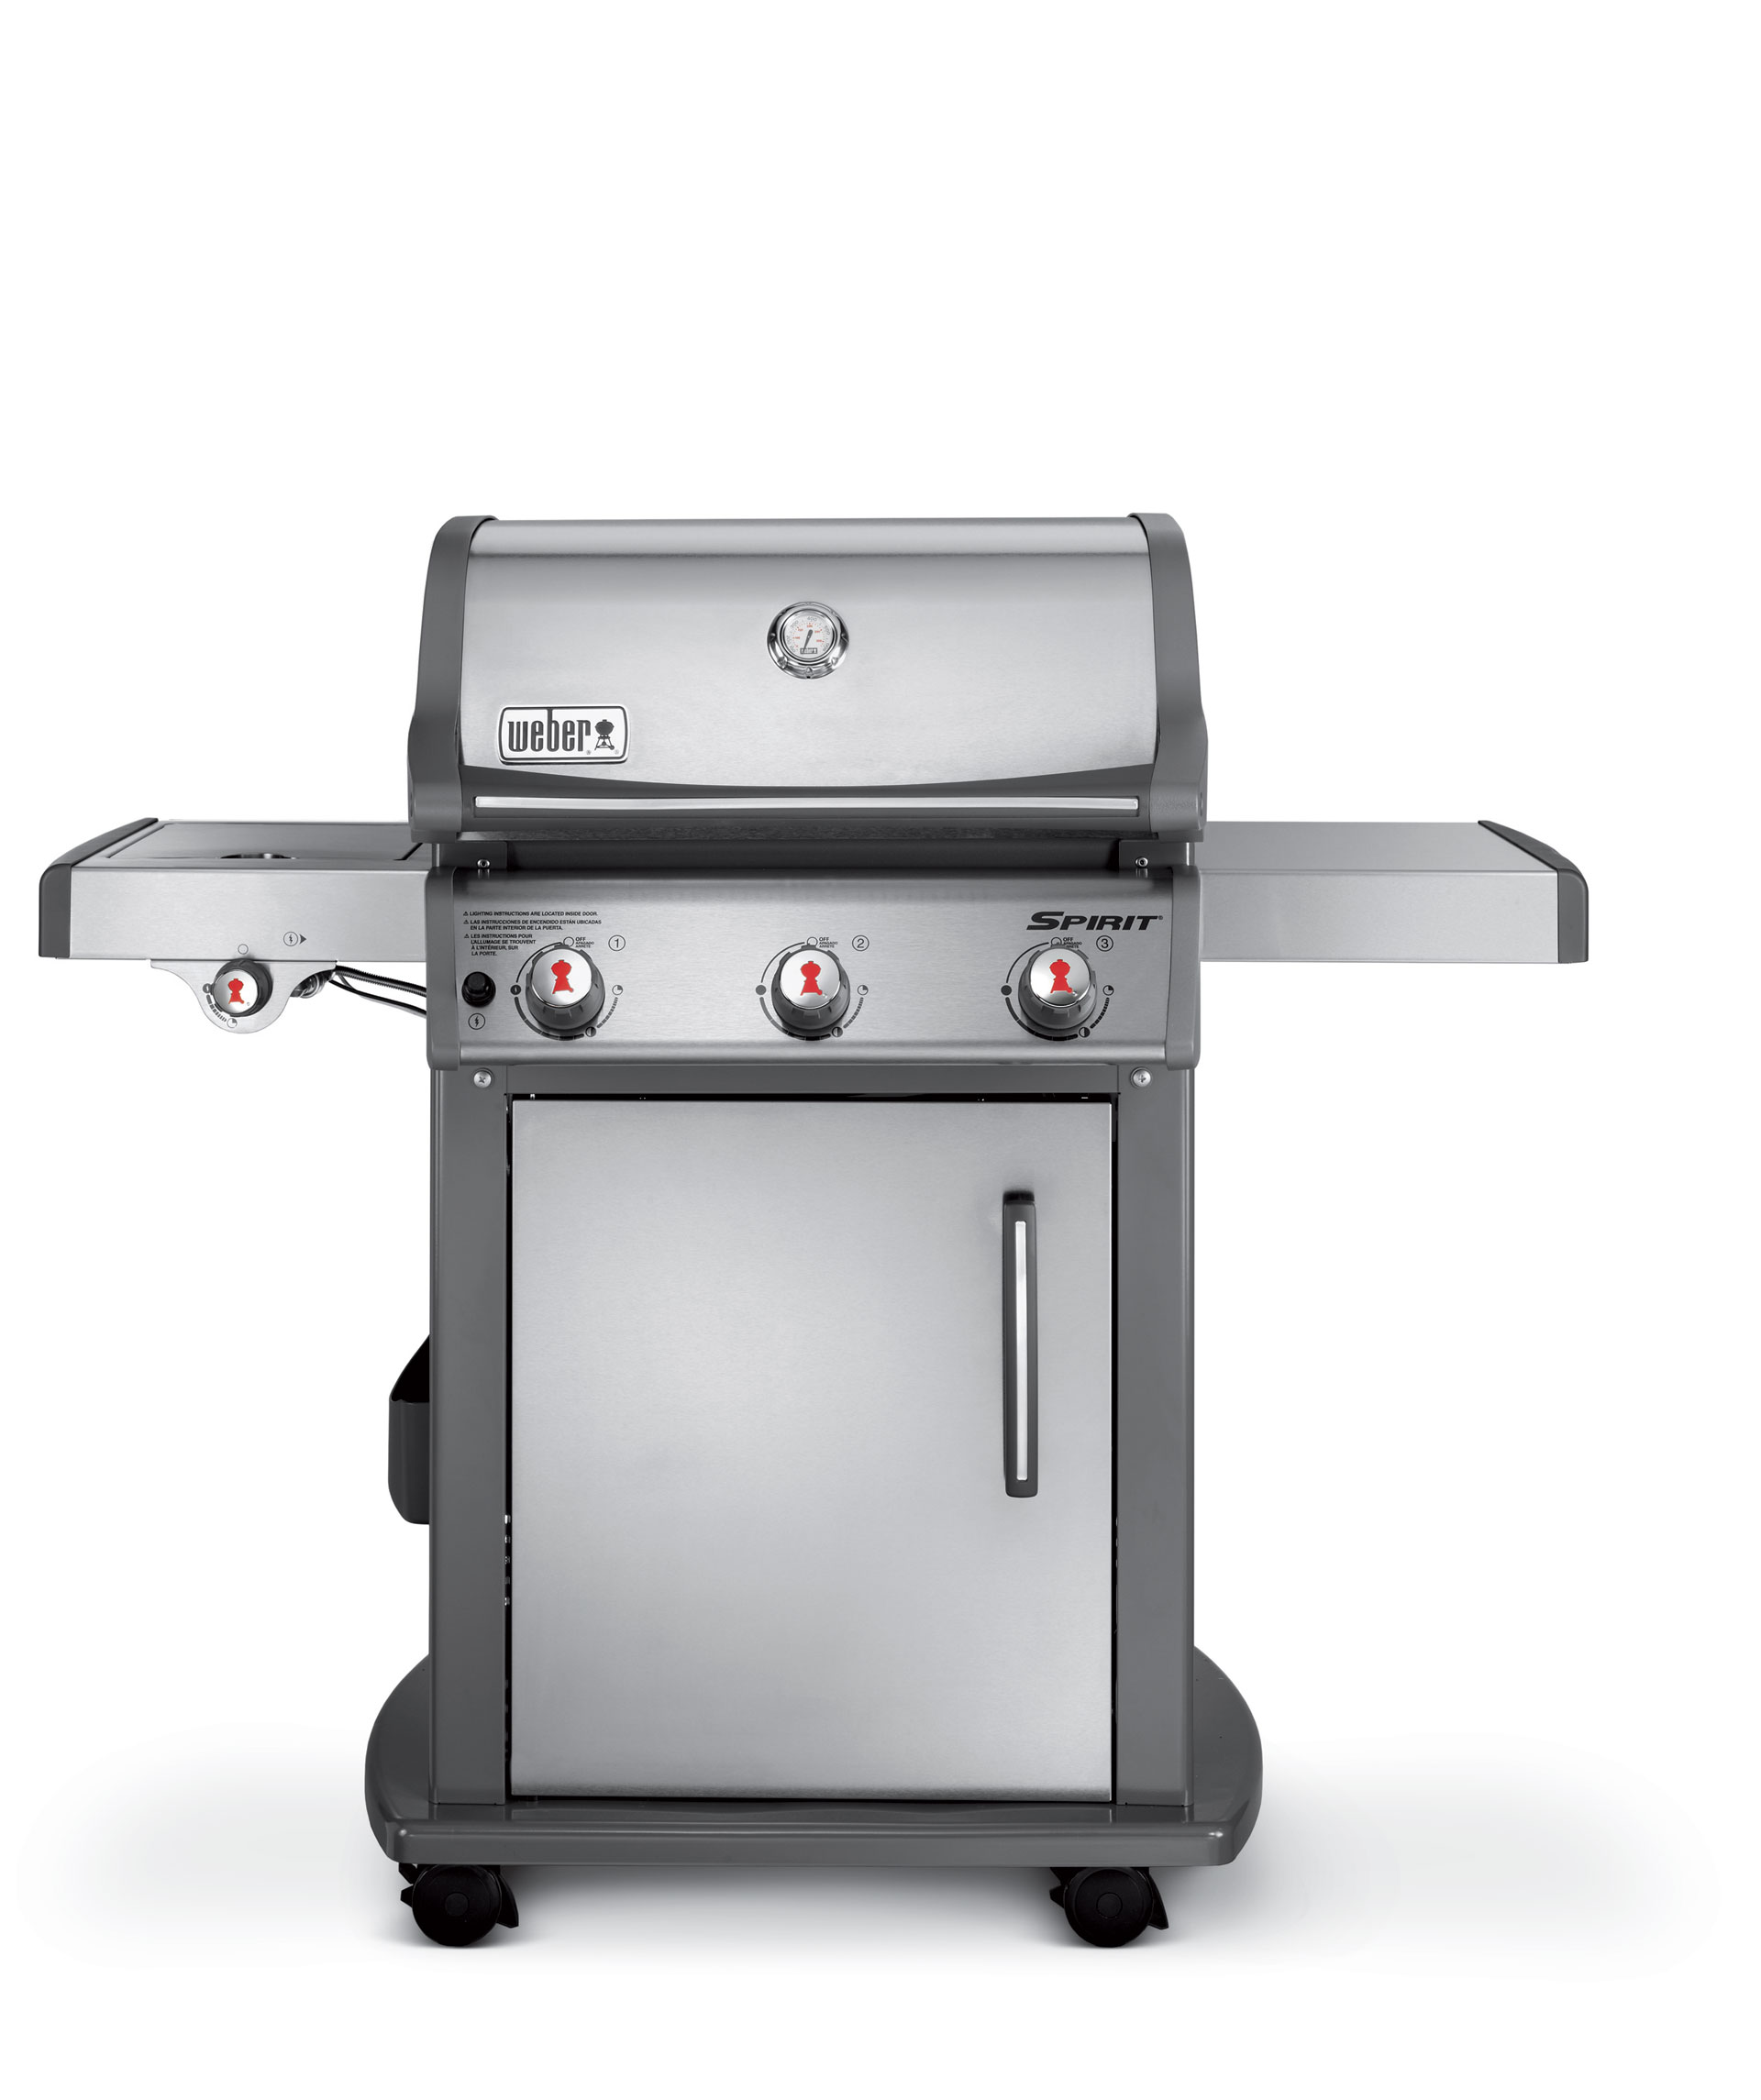 weber spirit gas grill sp 320 review. Black Bedroom Furniture Sets. Home Design Ideas